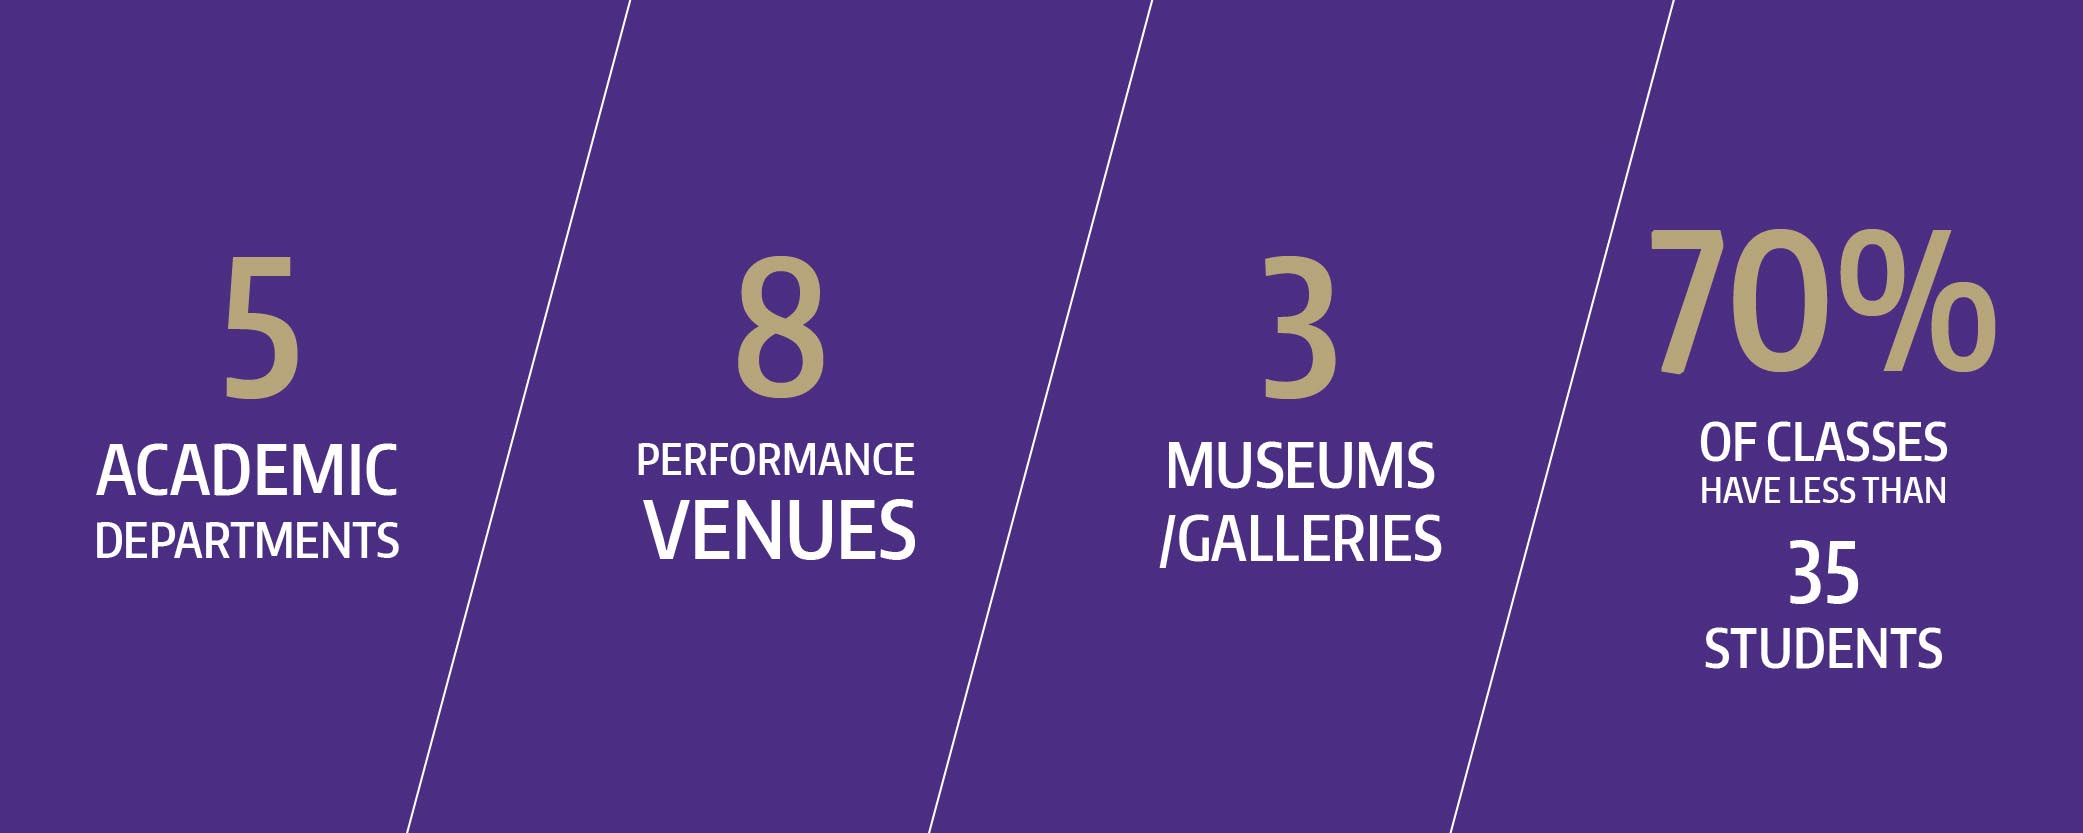 As of Nov 2018. 5 Academic departments. 8 performance venues. 3 museums/galleries. 70% of classes have fewer than 35 students.